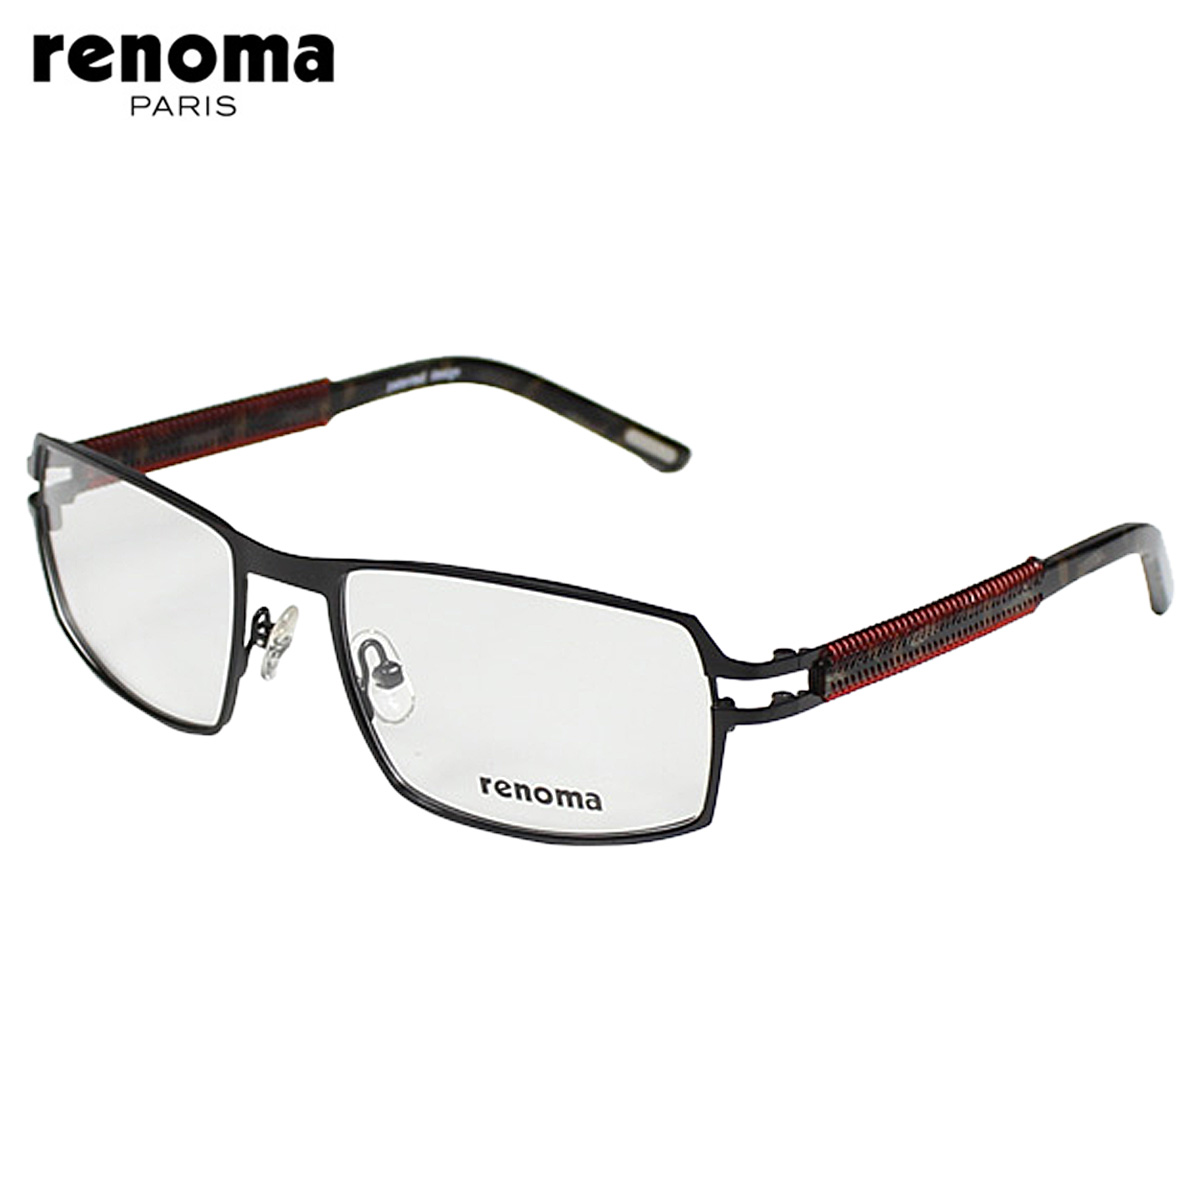 11cb0437bb Renoma renoma glasses  Black  metal frame mens Womens unisex eyewear  business  regular